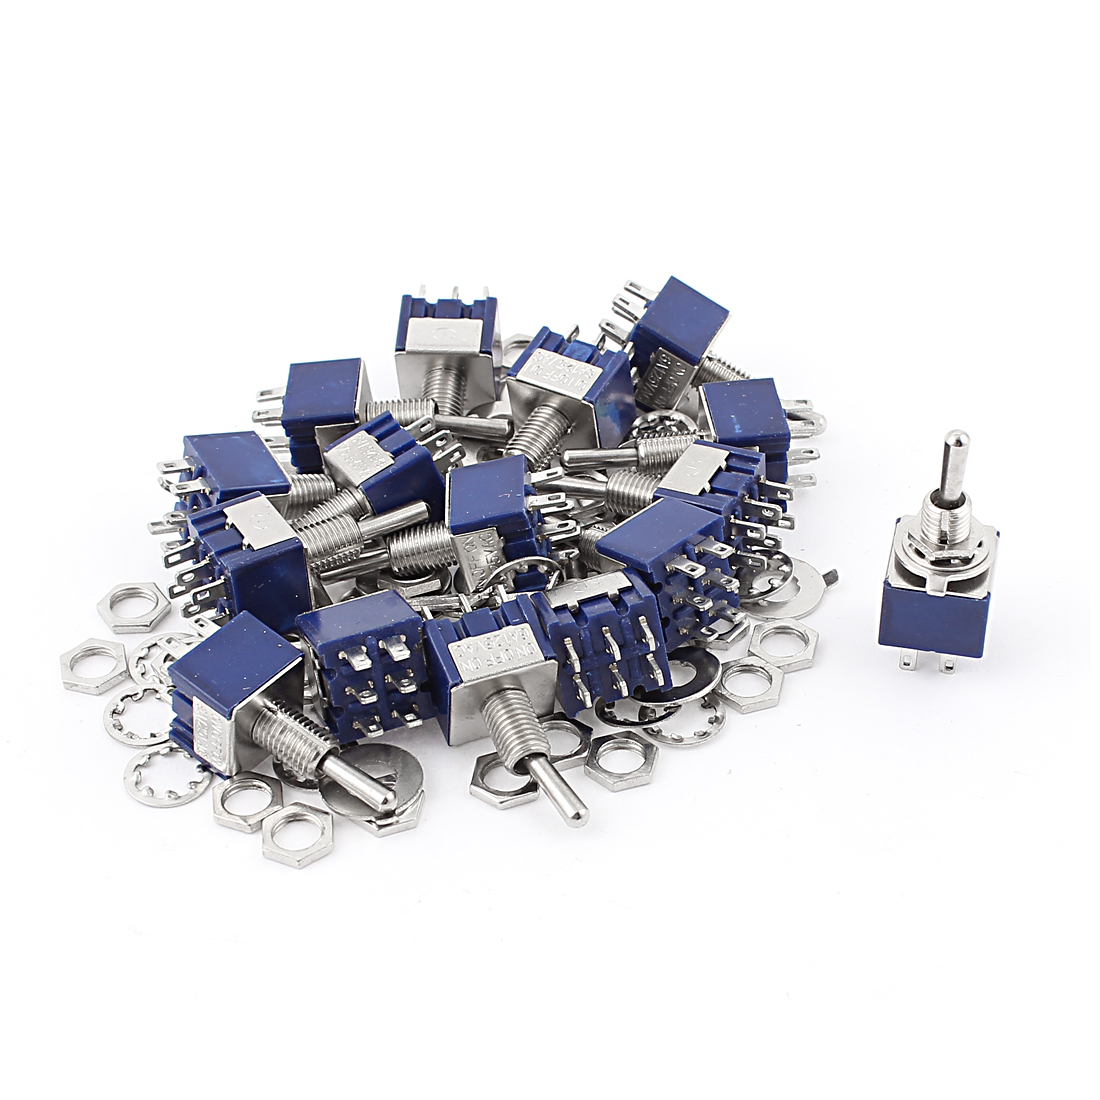 20Pcs AC 125V 6A 6Pin 3 Positions ON-OFF-ON 6mm Thread DPDT Latching Mini Toggle Switch Blue